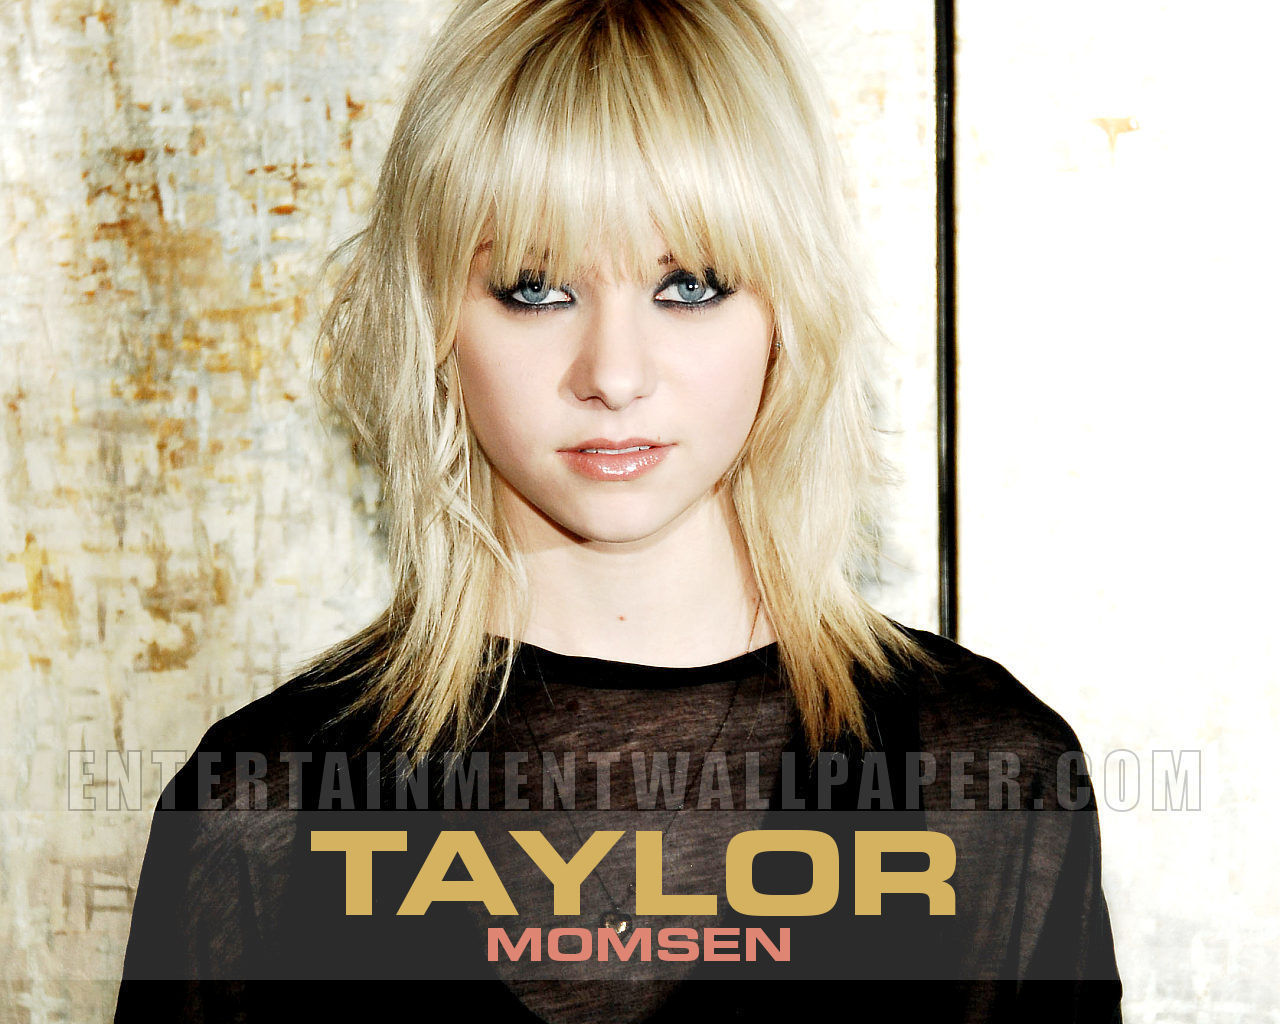 Taylor Momsen images Taylor new wallpapers HD wallpaper and background ... Taylor Momsen